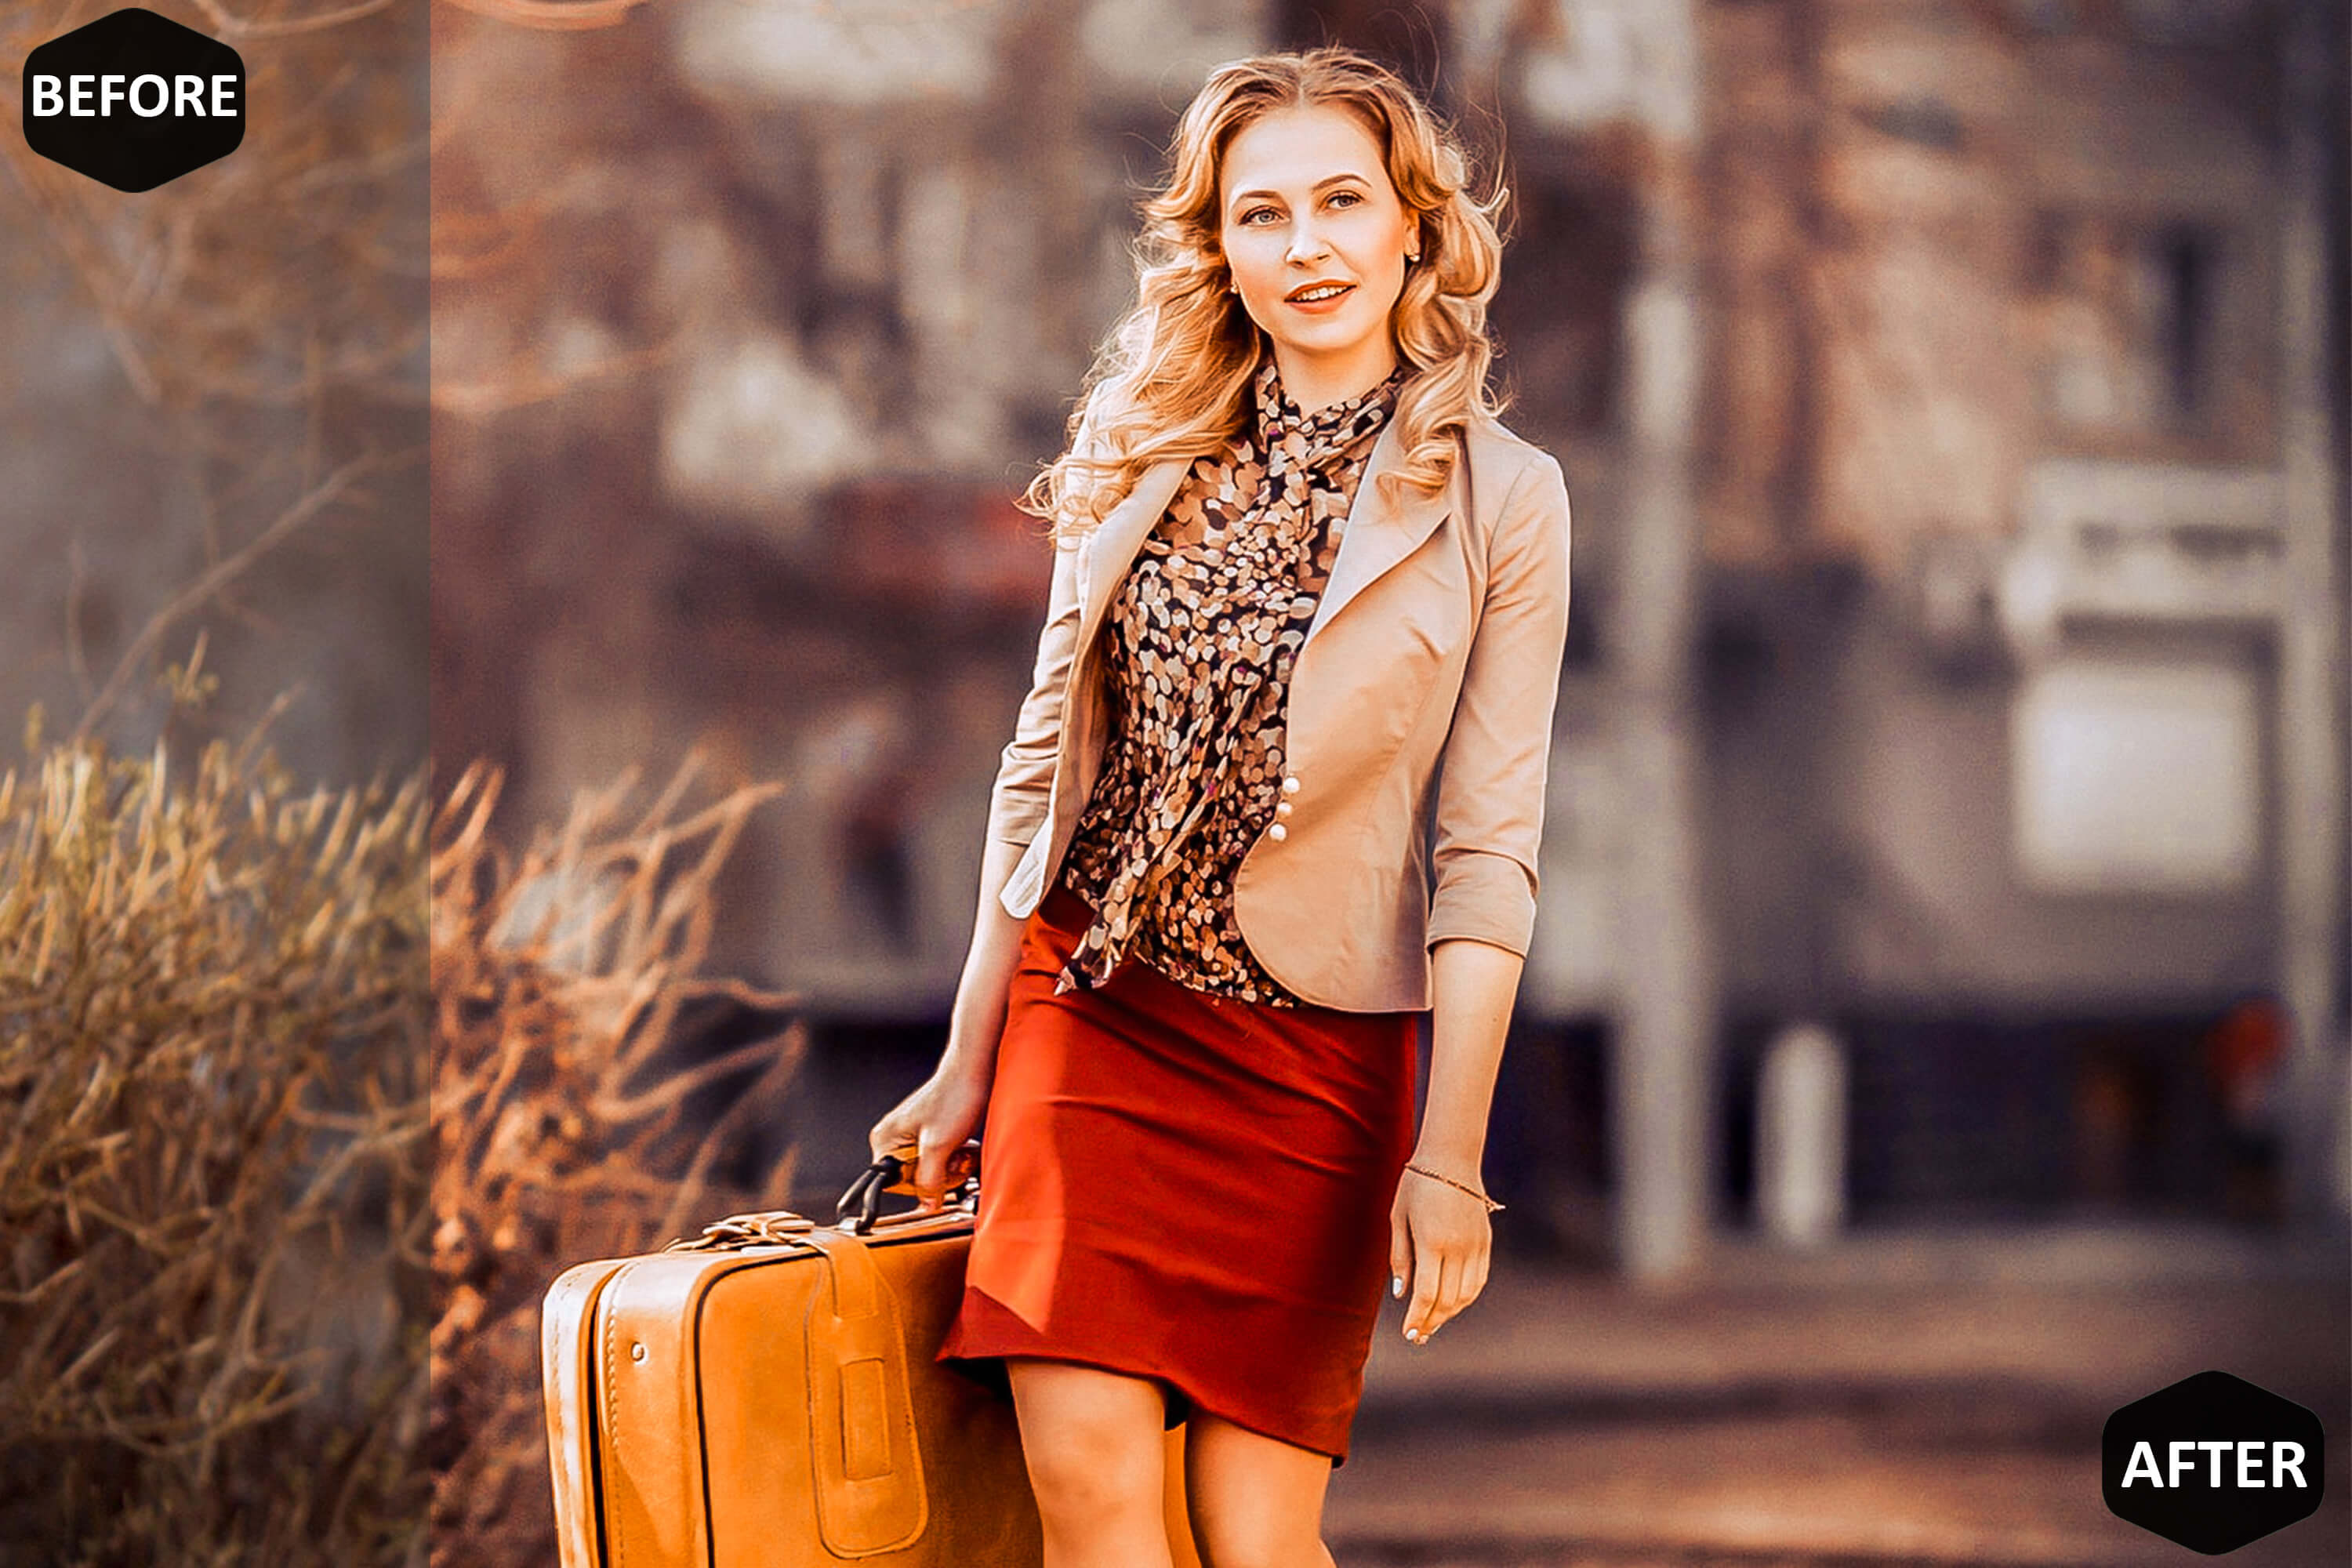 Red Blogger Photoshop Actions And ACR Presets example image 6